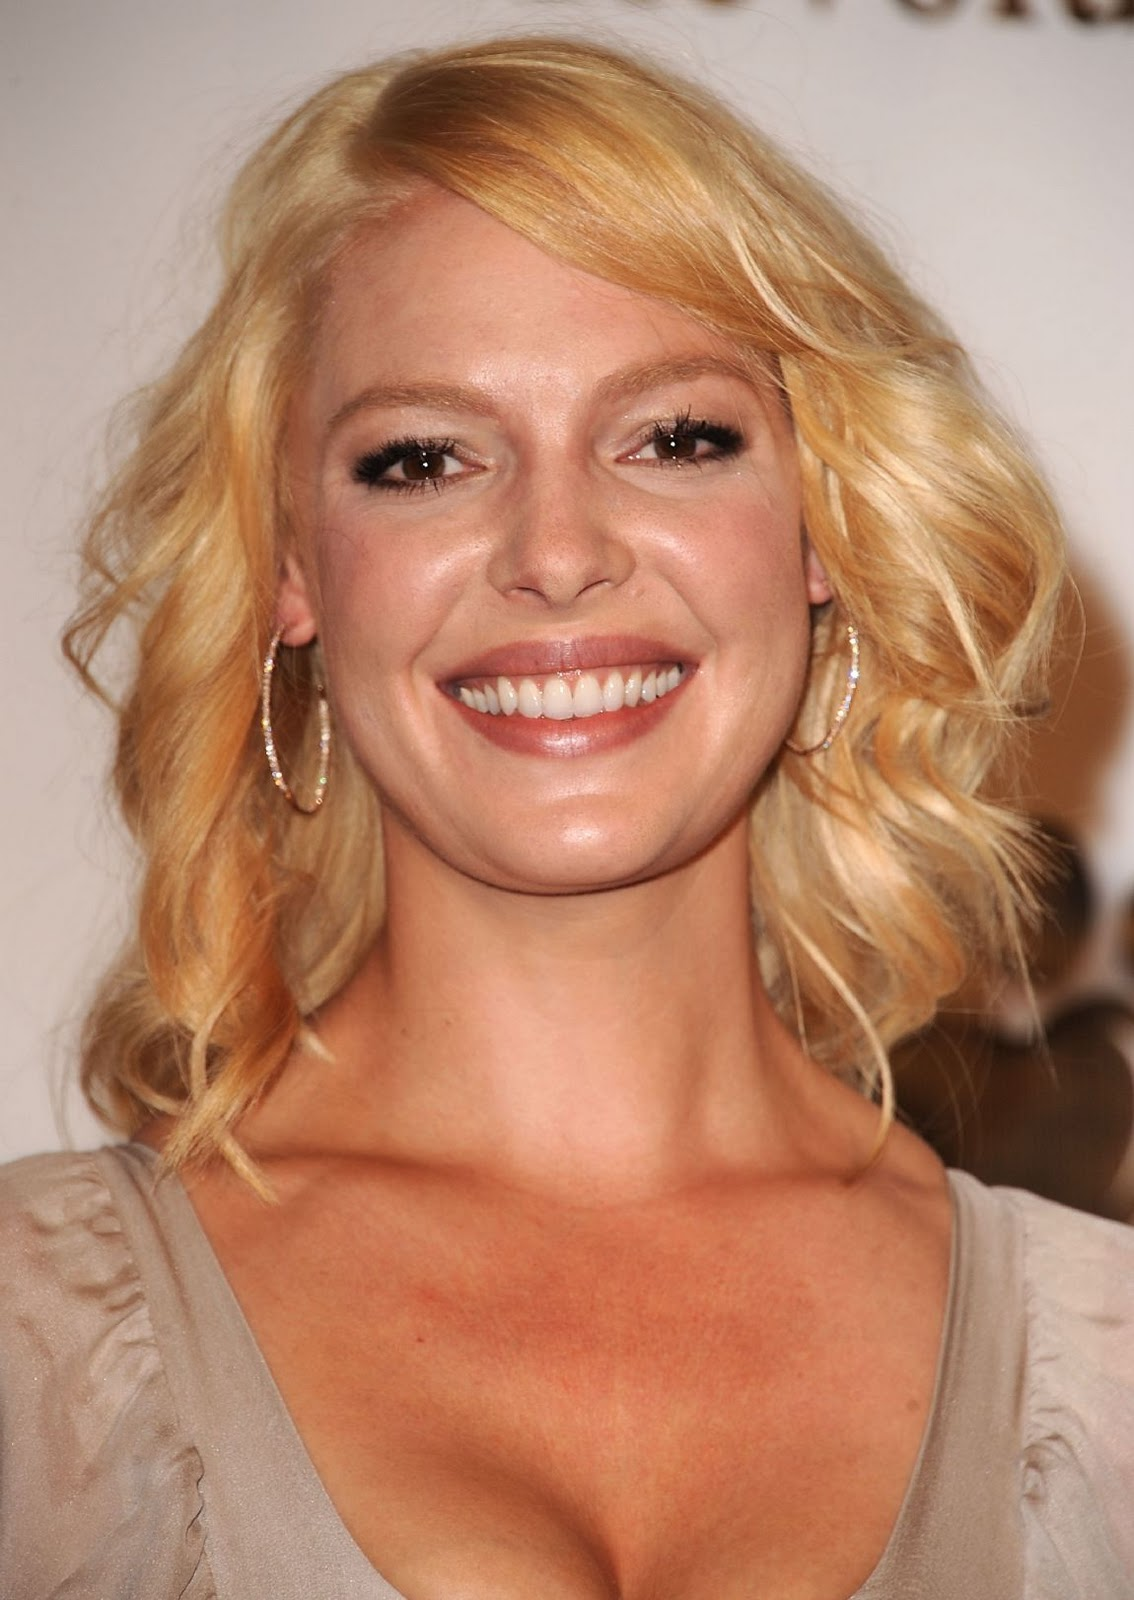 http://2.bp.blogspot.com/-lJhJlWlspTM/Tn6SNthkdYI/AAAAAAAAAlA/oi_ZZ3mMlvE/s1600/Katherine-Heigl-pics-images-photos-movies-actress-flims%2B2.jpg